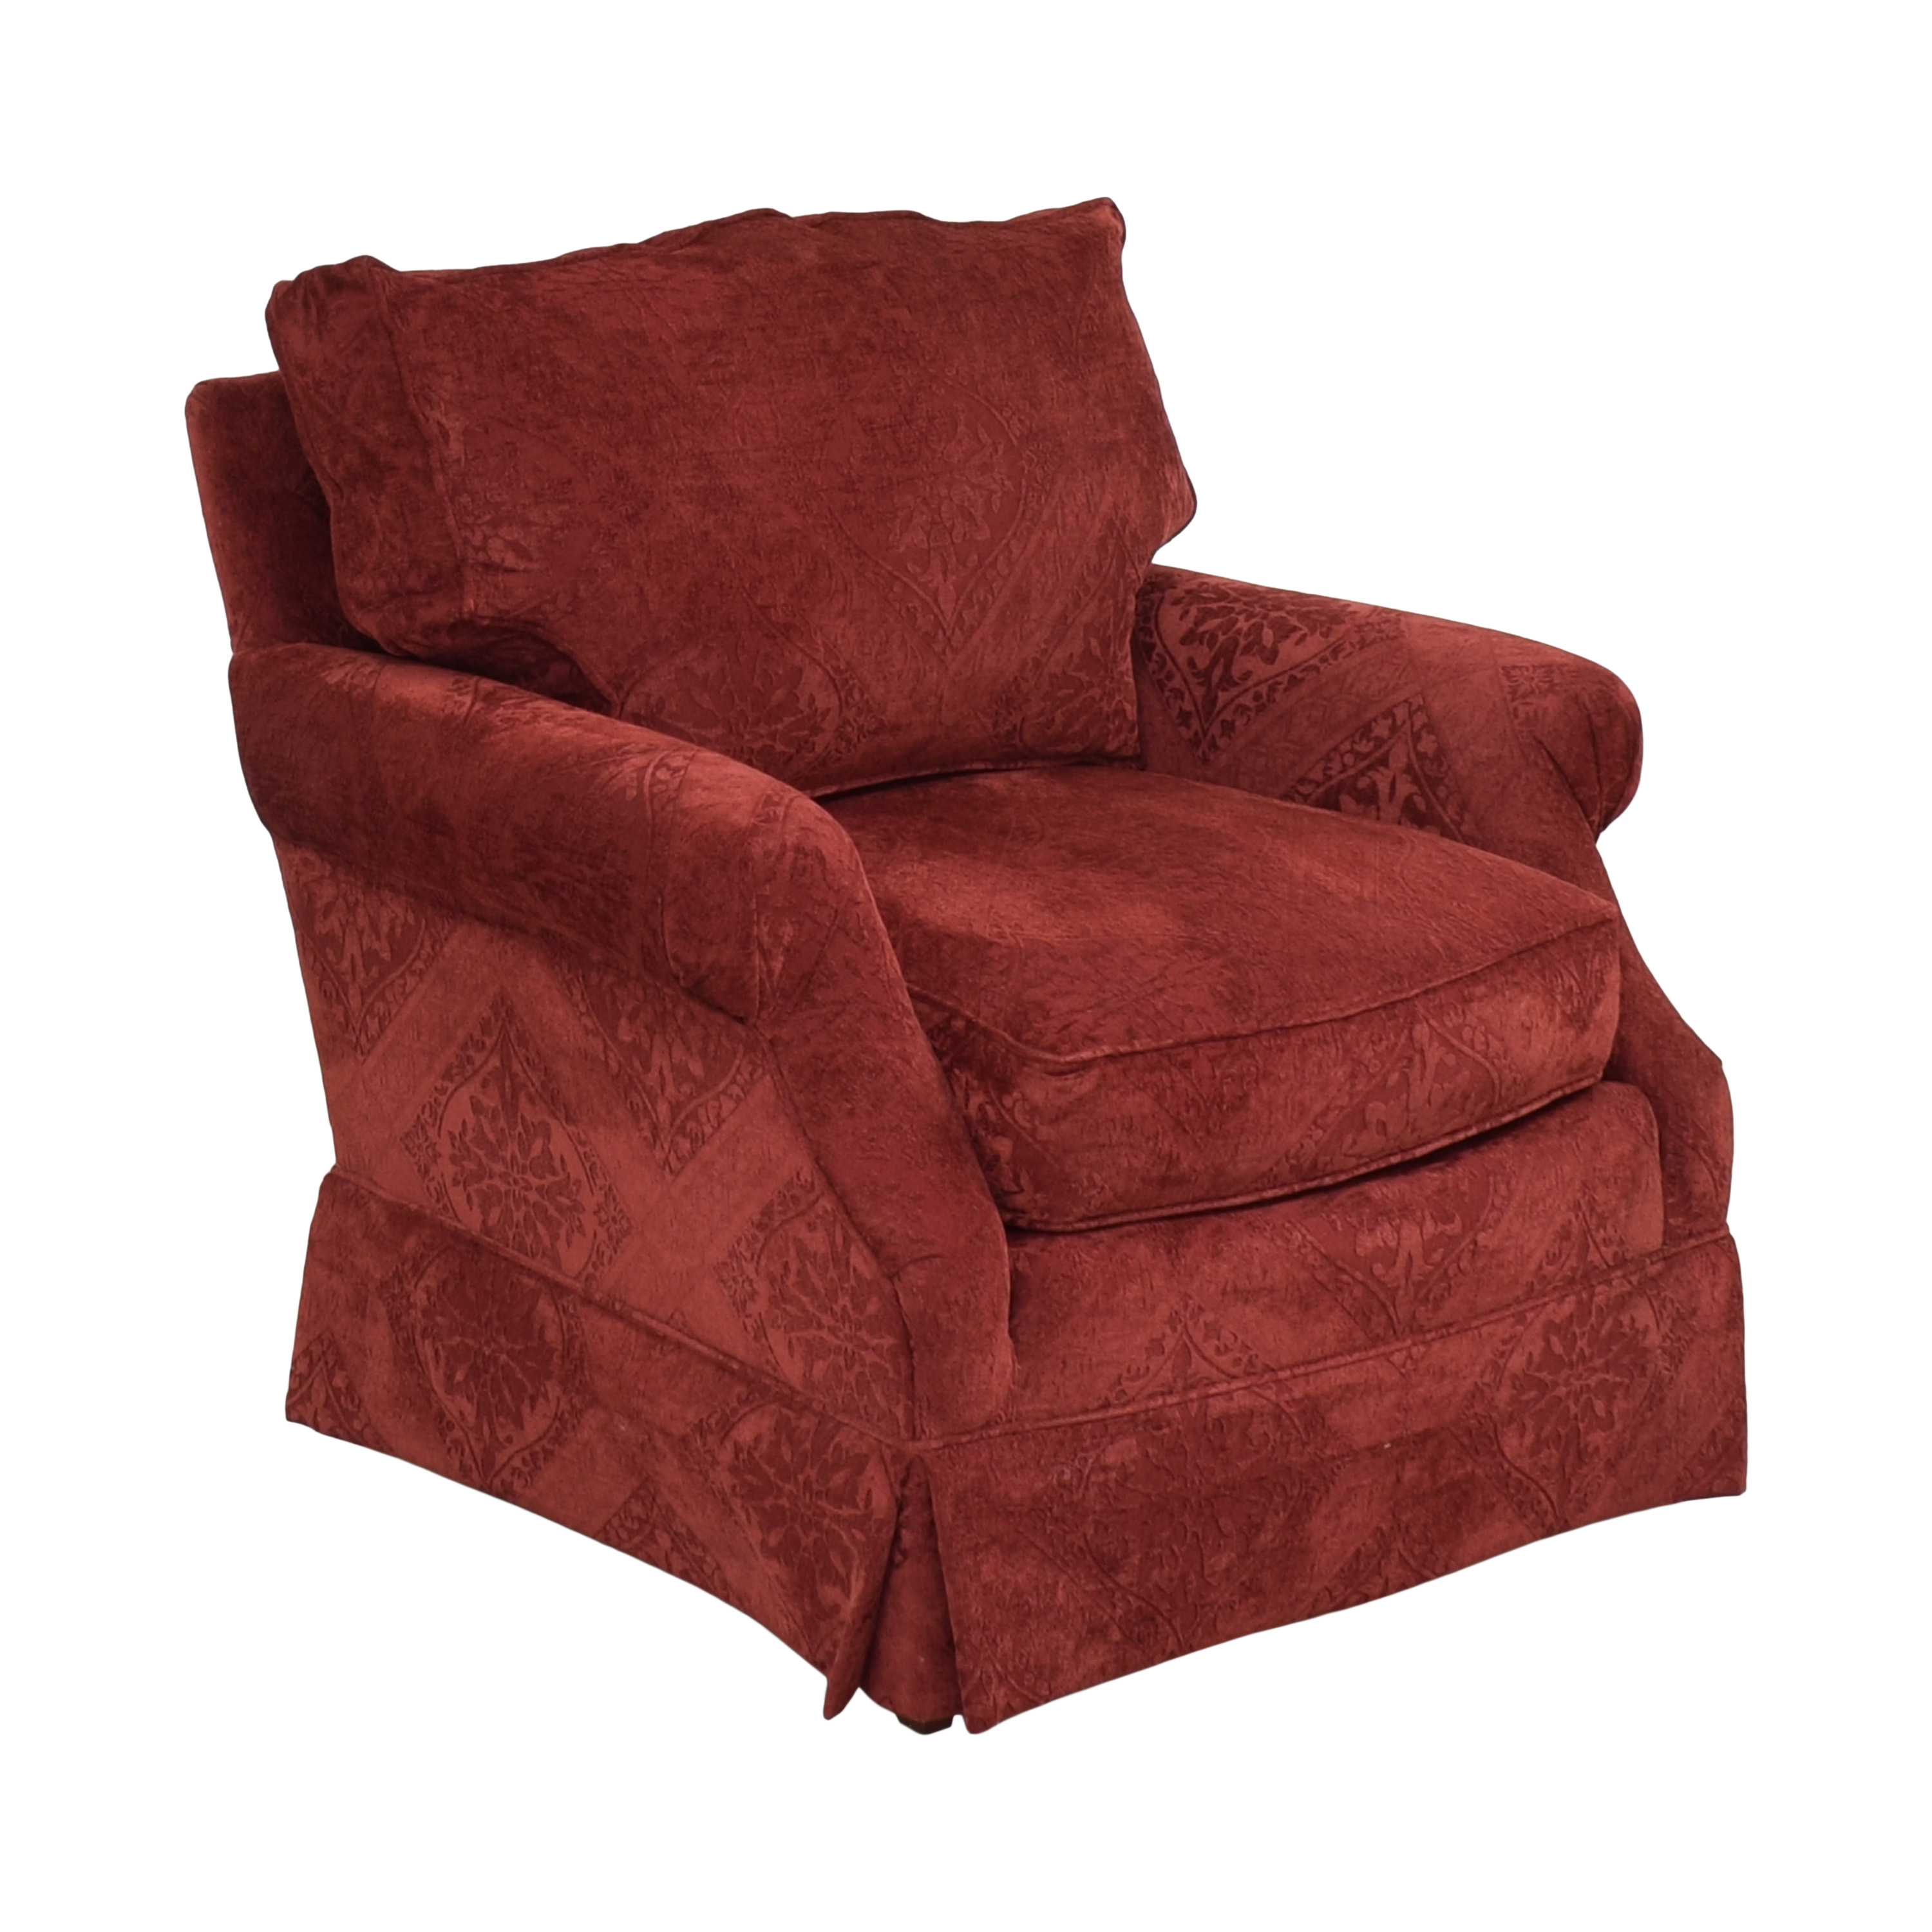 Hickory Manor Hickory Manor Skirted Penelope Accent Chair Chairs